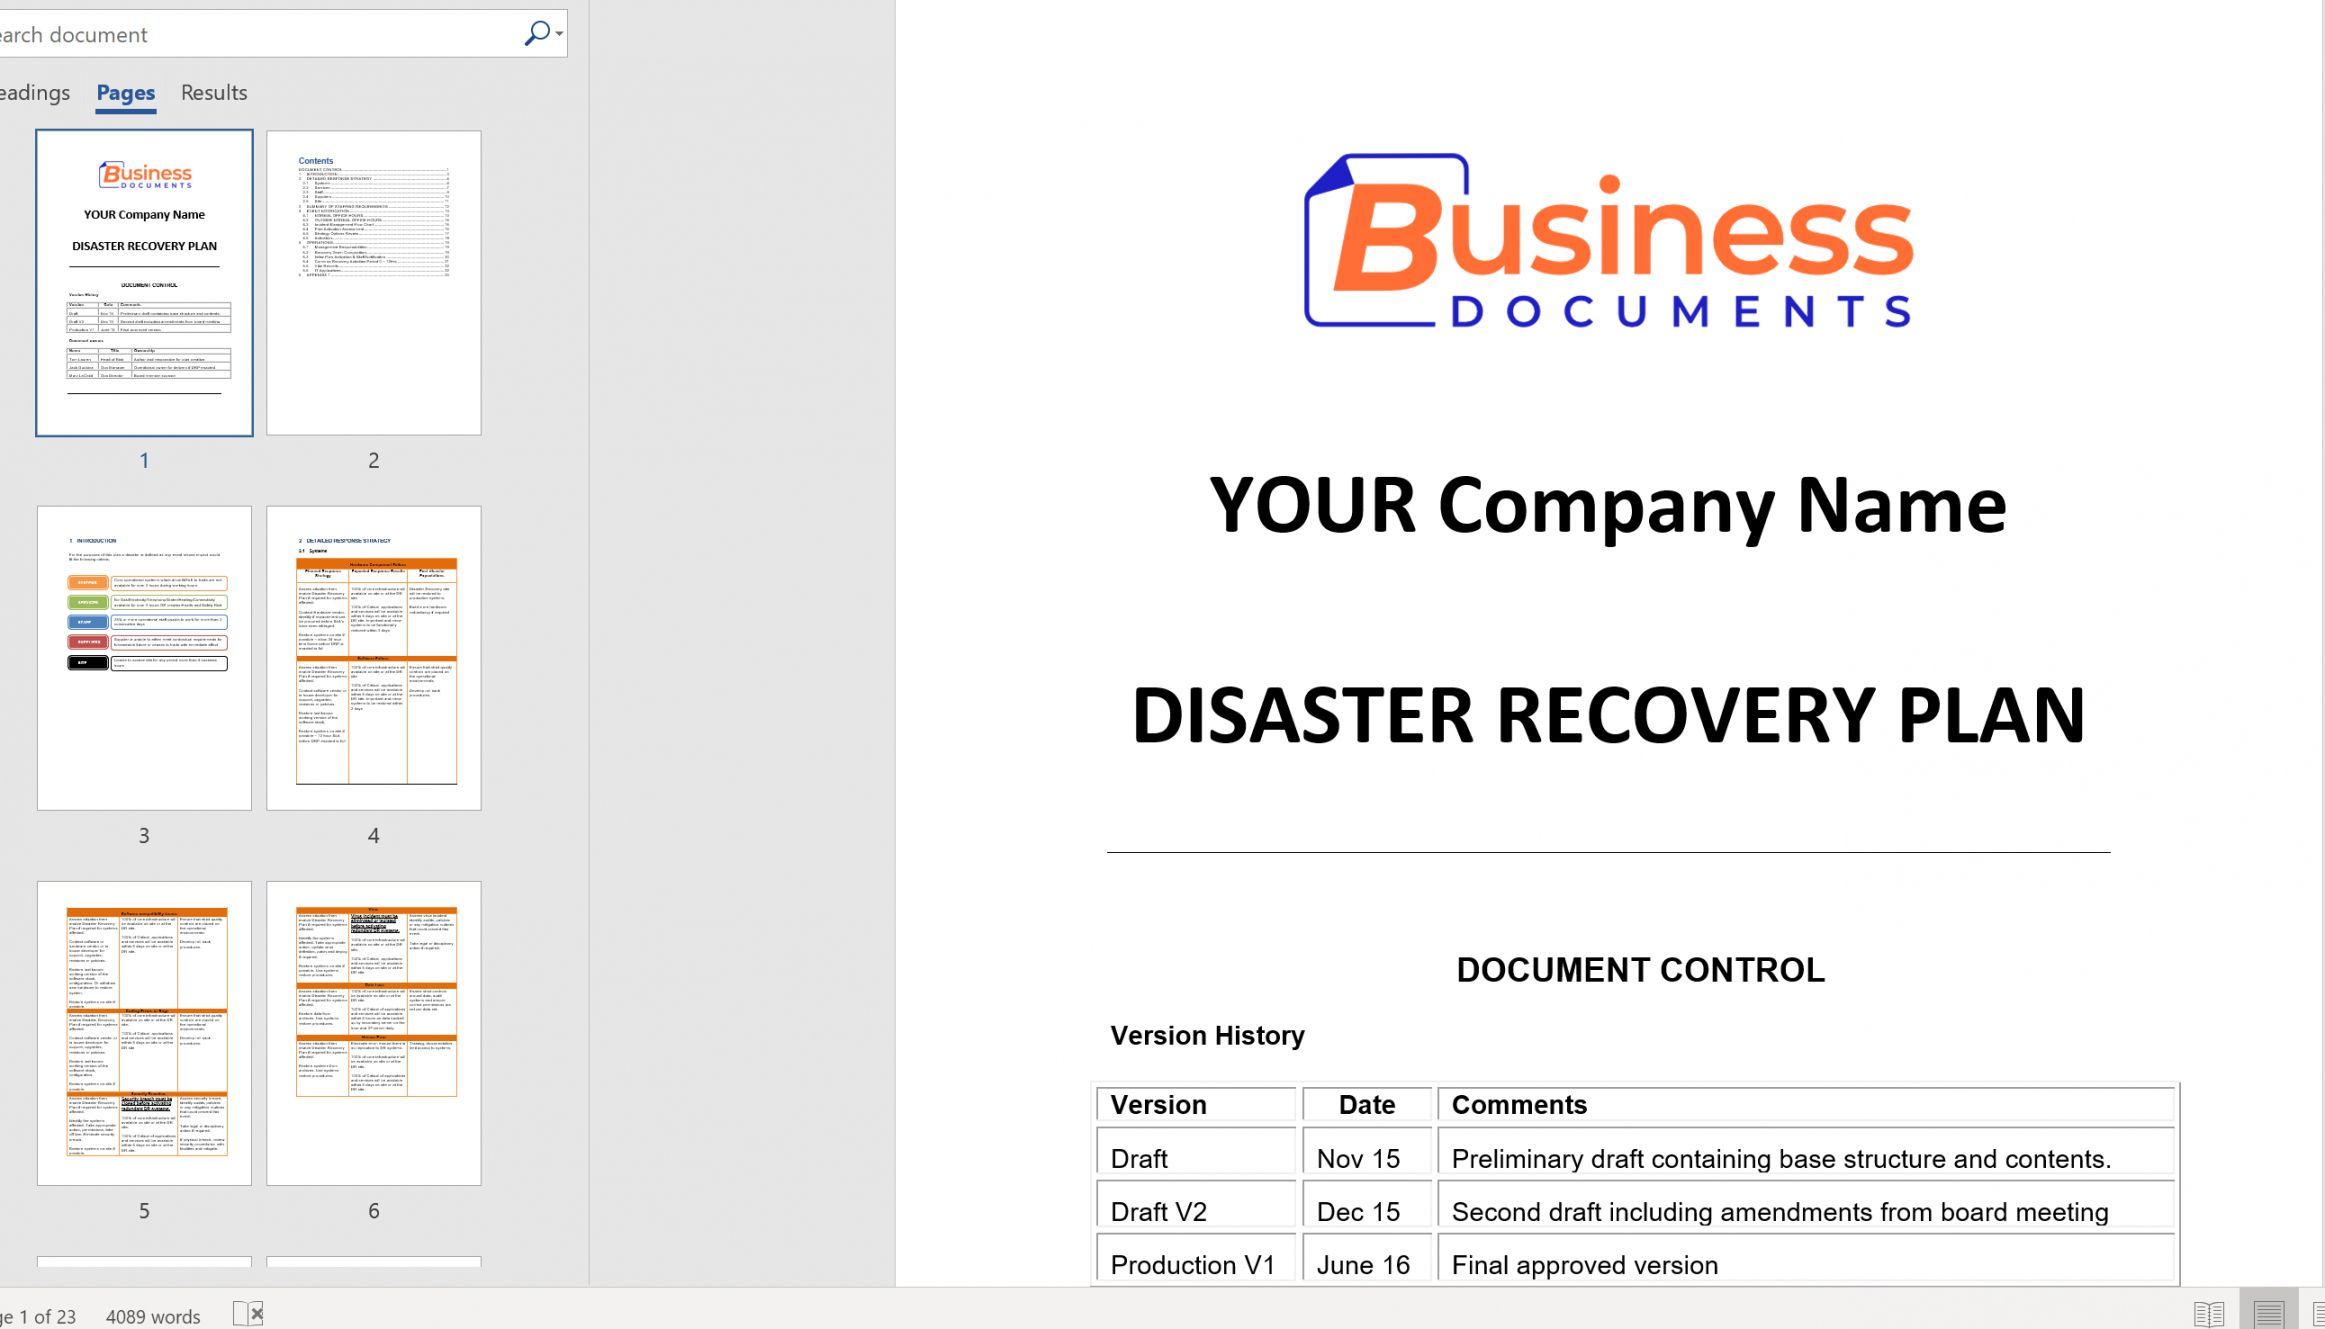 Disaster Recovery Proposal Template Disaster Recovery Business Continuity Proposal Templates It disaster recovery plan template